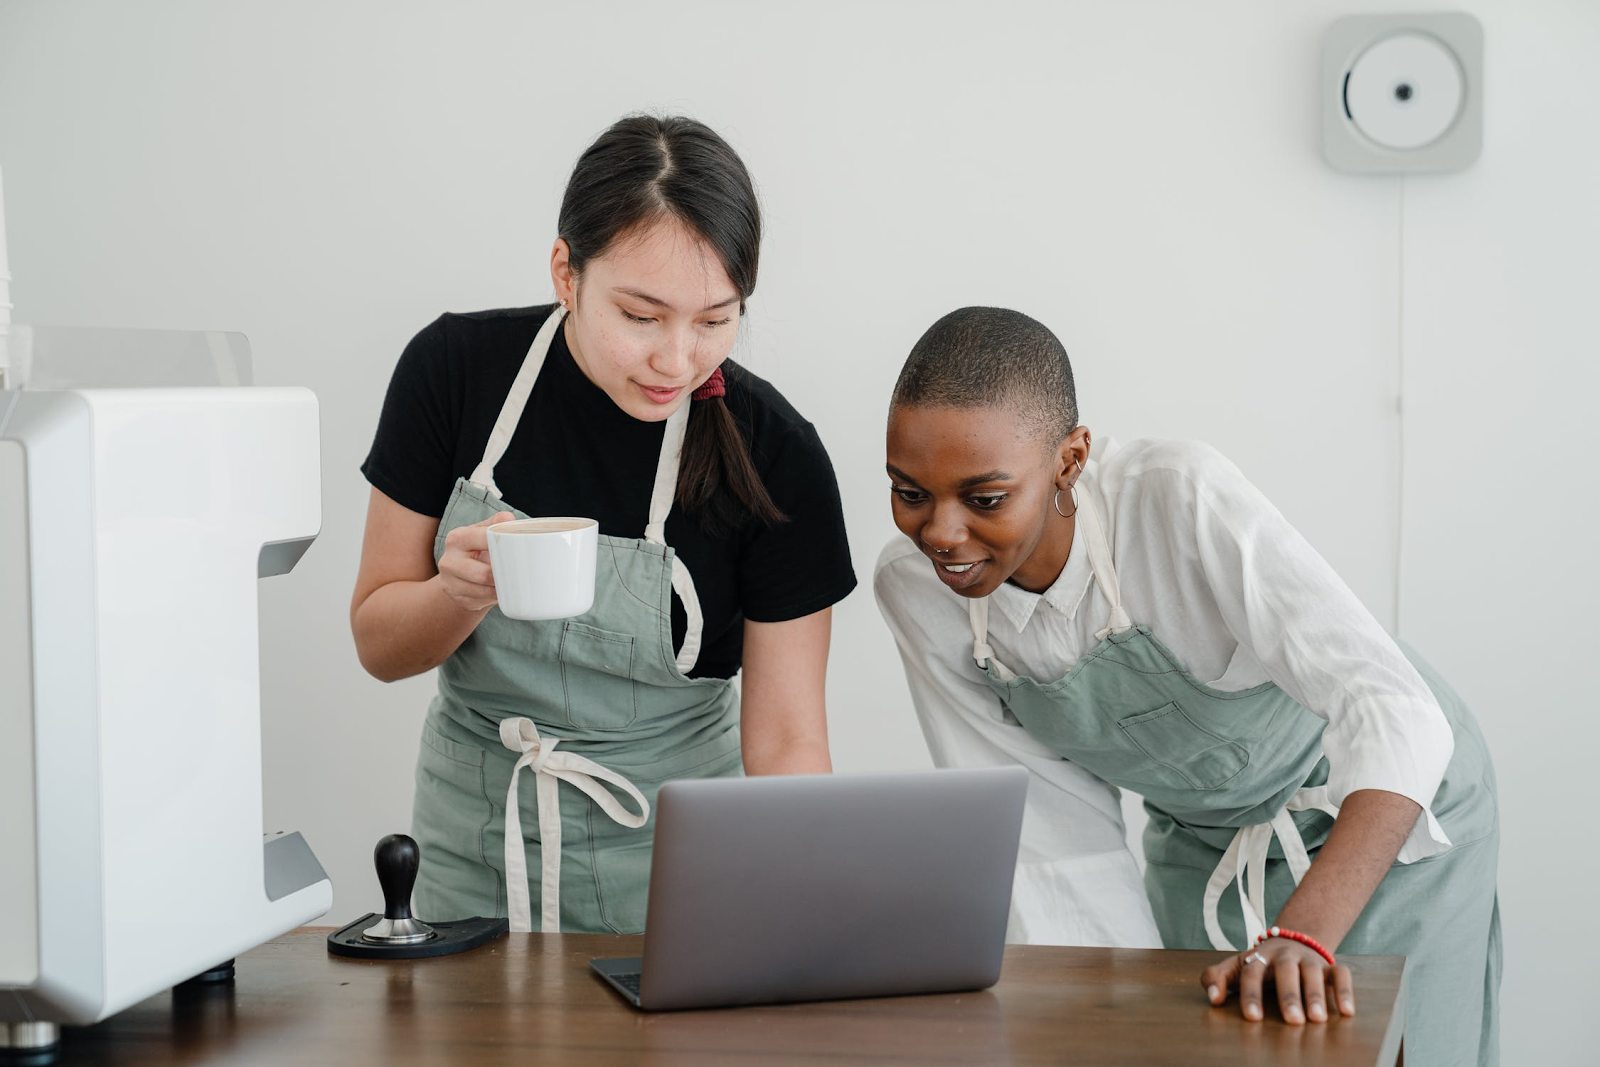 two women, one with a coffee cup, looking at a laptop screen